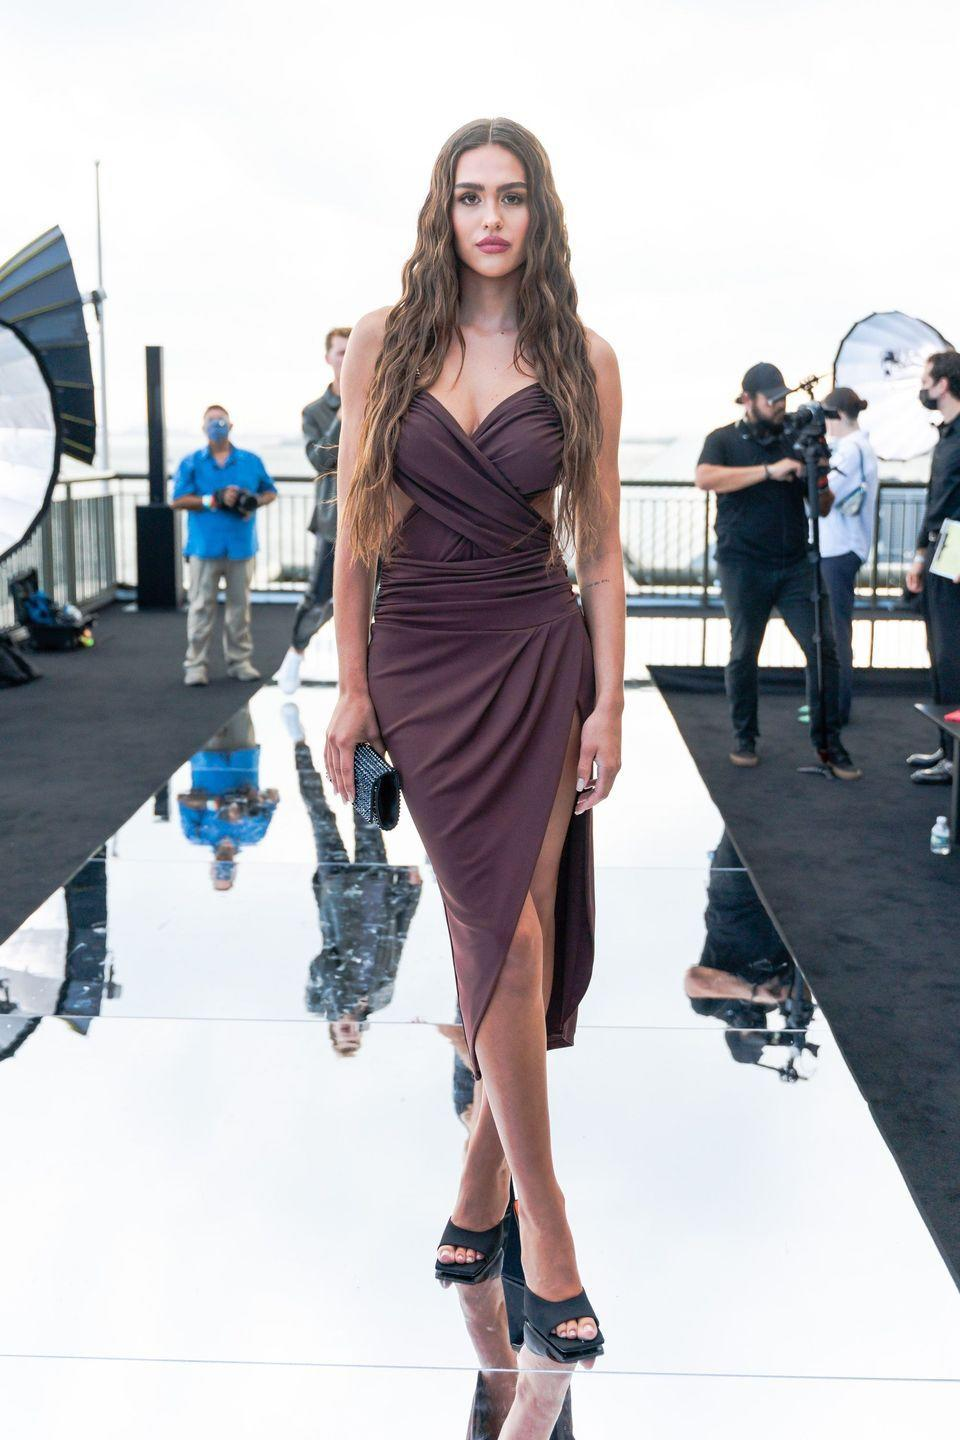 <p> Lisa Rinna's daughter Amelia Hamlin attends the DUNDAS x REVOLVE NYFW Runway Show at Casa Cipriani at Casa Cipriani, shortly after her break up with Scott Disick.</p>